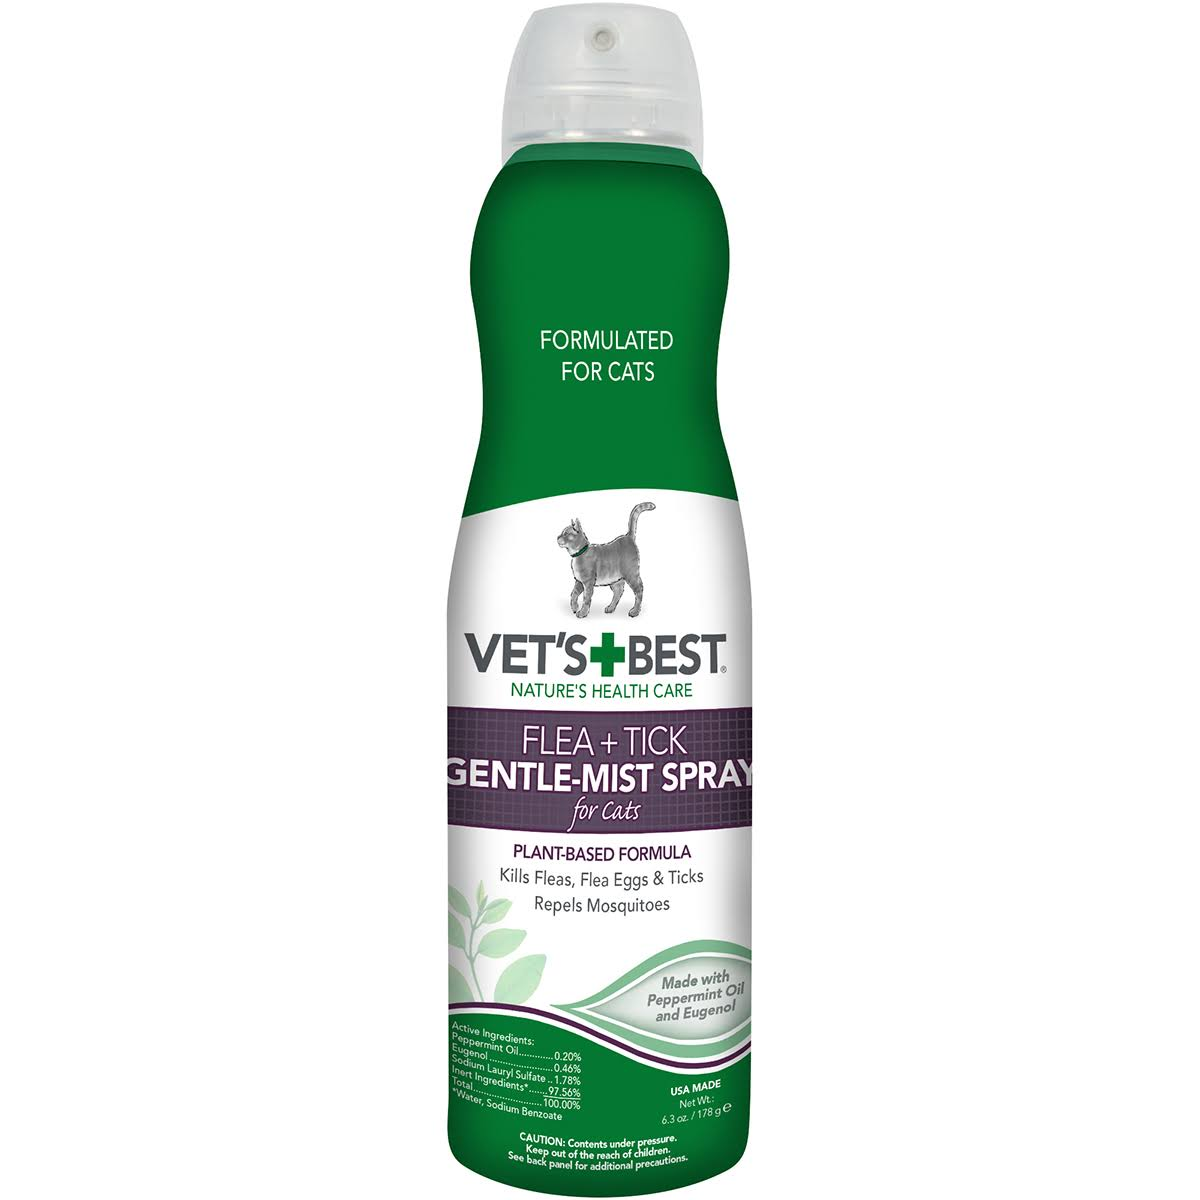 Vet's Best Flea & Tick Gentle Mist Spray for Cats - 6.3 oz